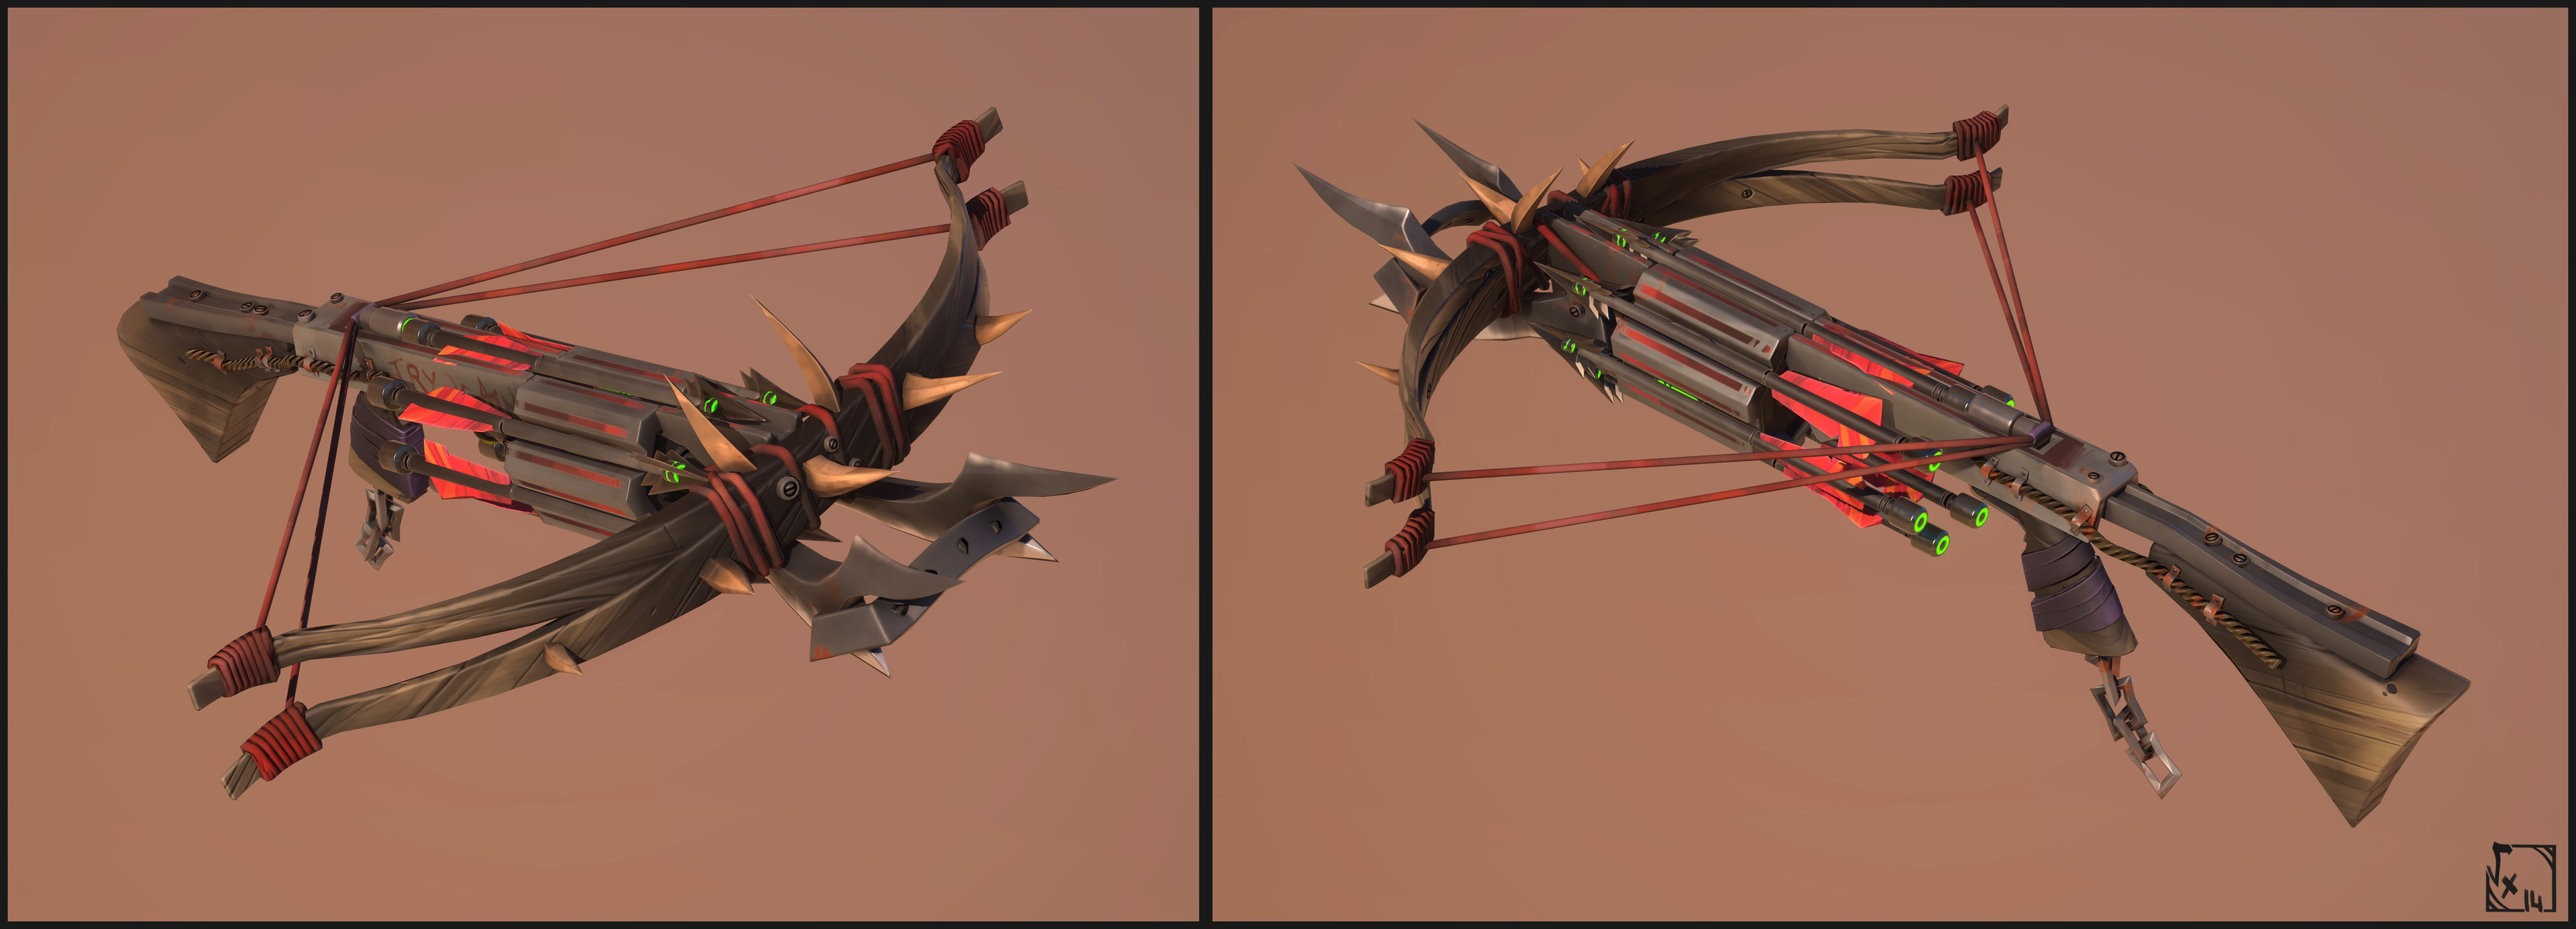 CrossBow - Not implemented yet ( but almost ), rigged on akeytsu and made on 3dsmax/3DCoat